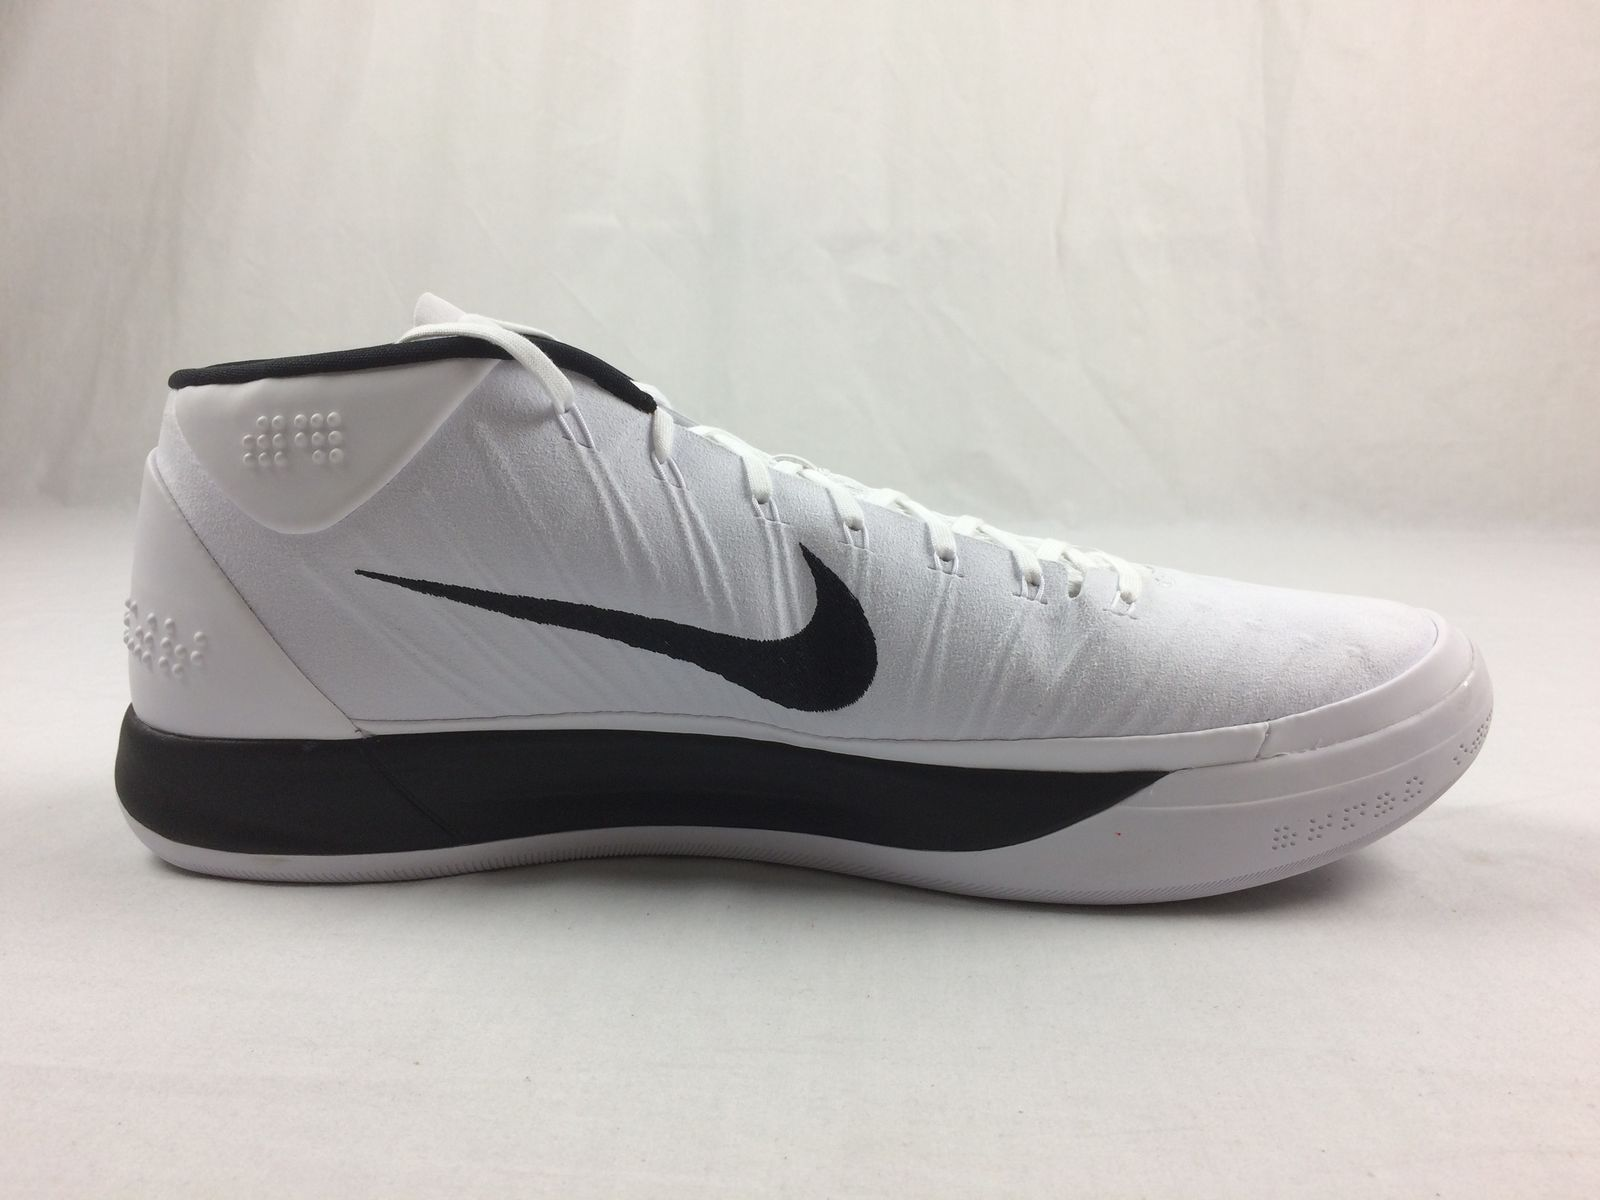 buy online e24bf f20ff NEW Nike Kobe A.D. TB Promo - White Basketball Shoes (Men s 18). PRODUCT  DETAILS  PRODUCT DETAILS